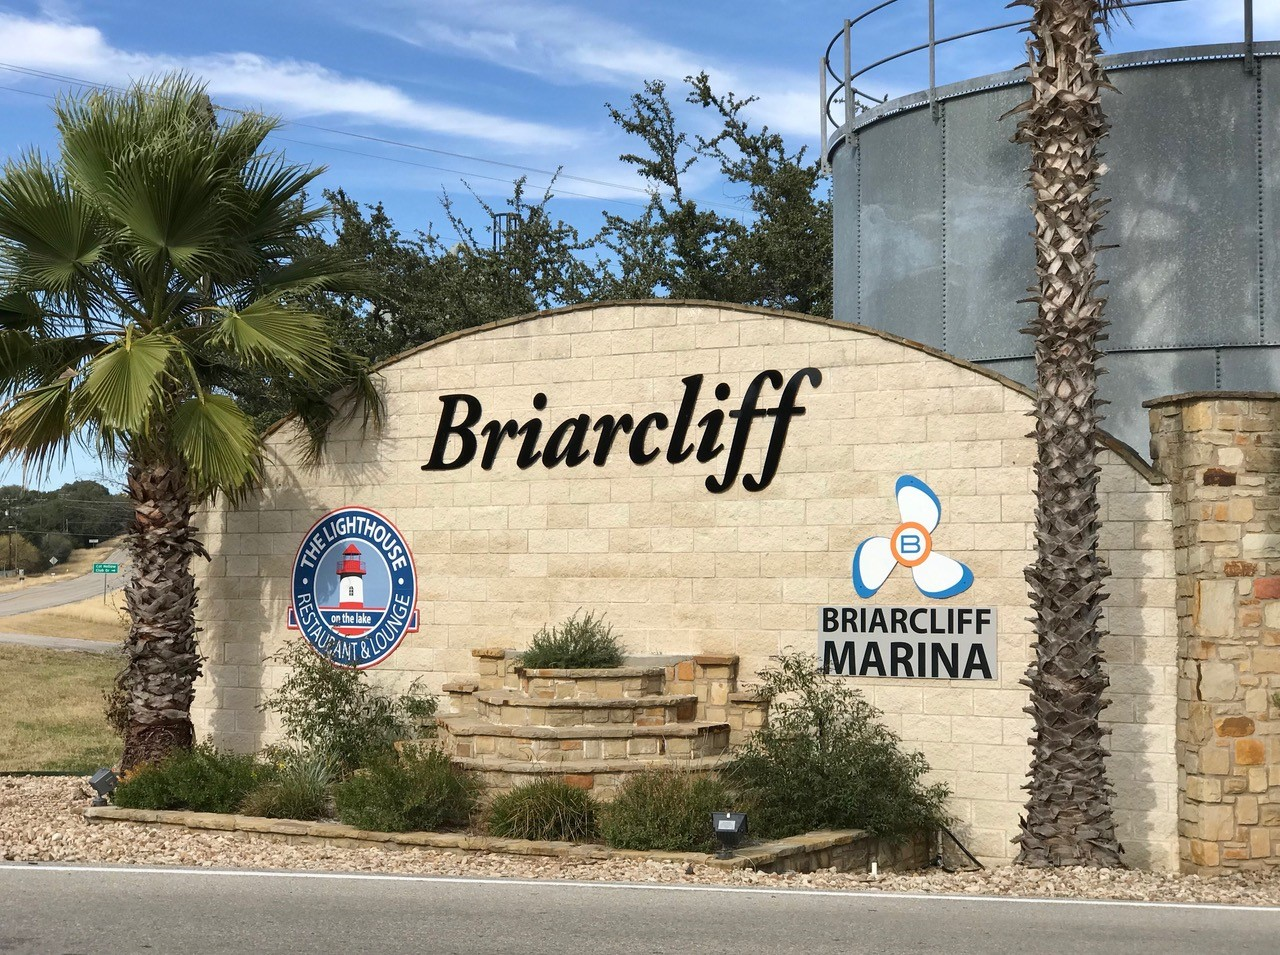 Main entrance to Briarcliff Marina